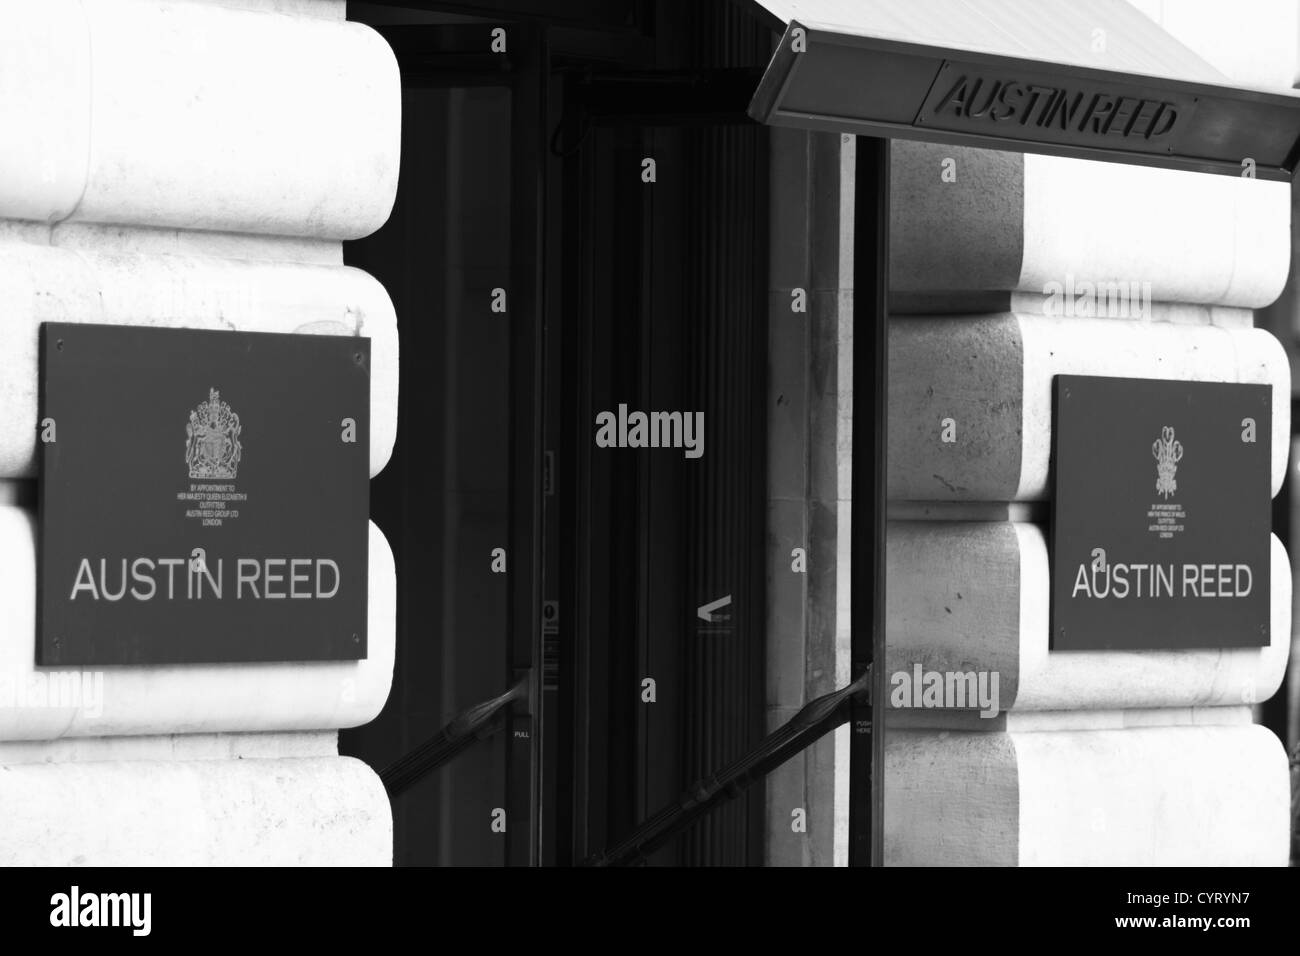 Two nameplates for the Austin Reed store in Regent Street London - Stock Image